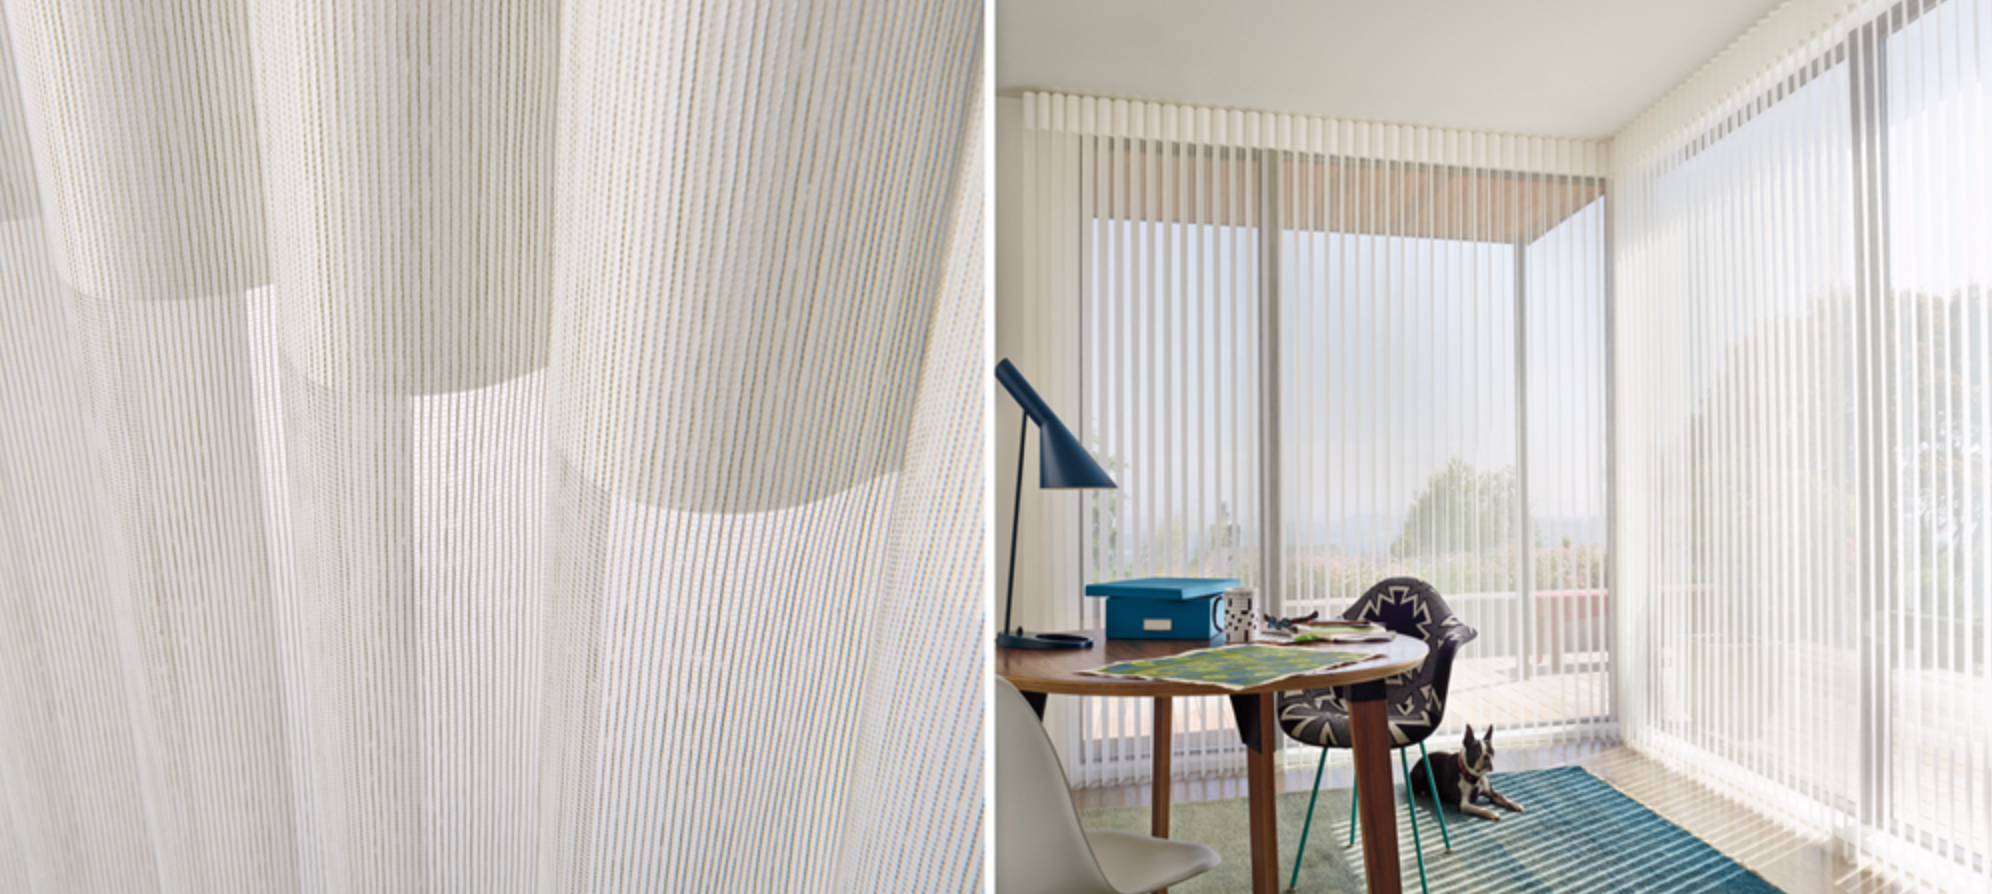 Luminette - Similar to draperies, our Luminette® vertical sheers are ideal for larger windows and sliding glass doors. 180-Degree rotating fabric vanes put you in control of your natural light and privacy.